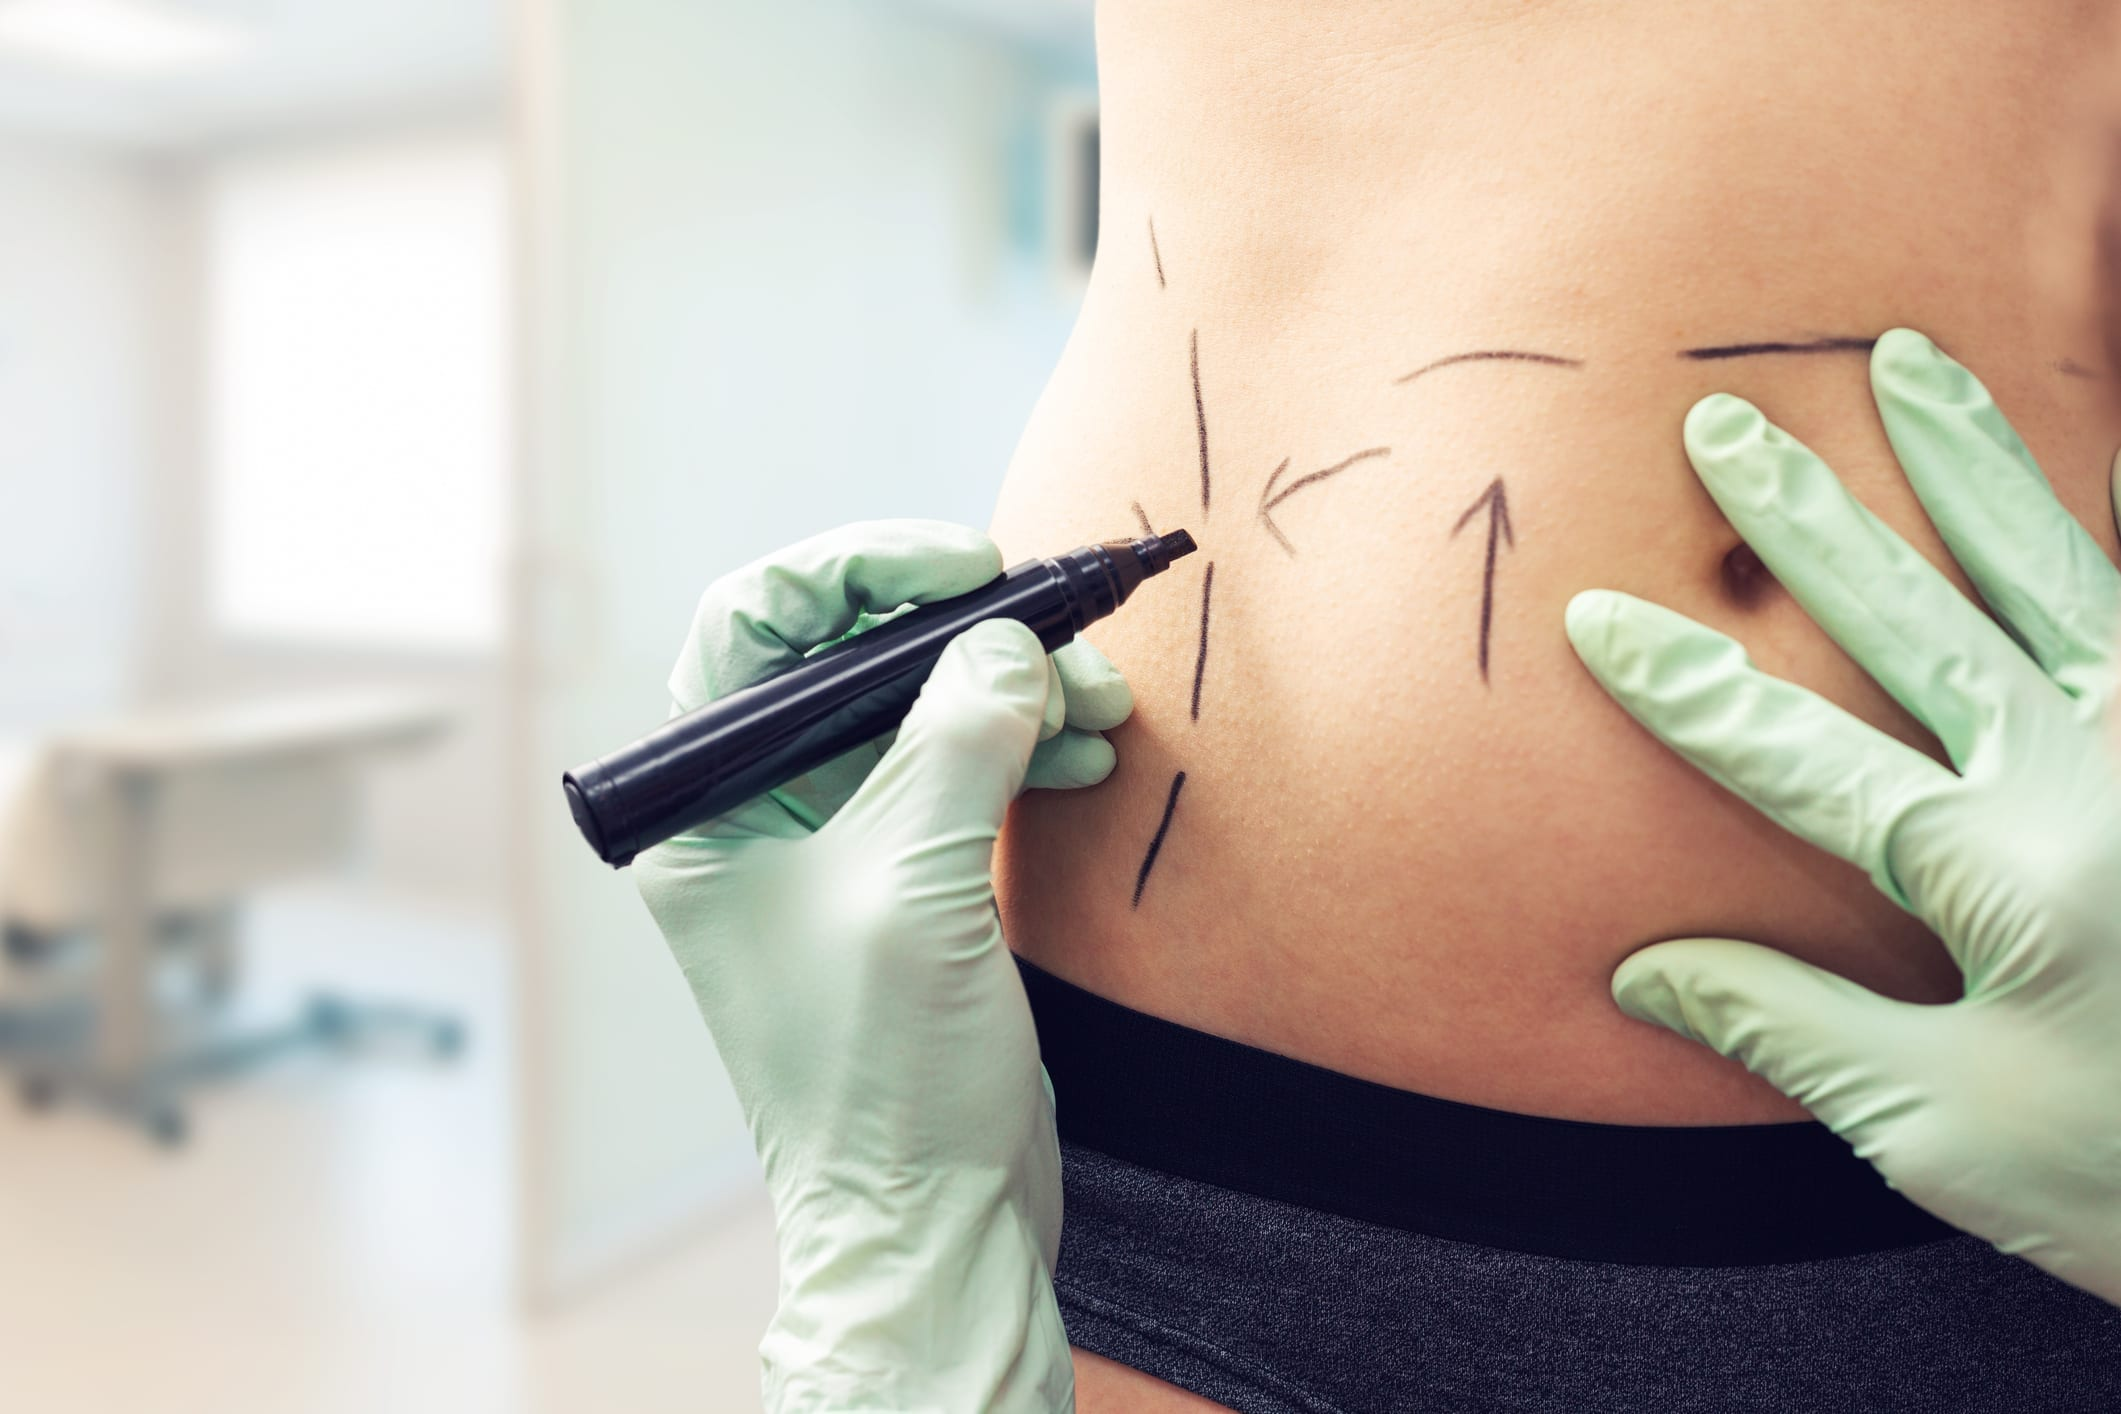 plastic surgeon marking womans body for surgery